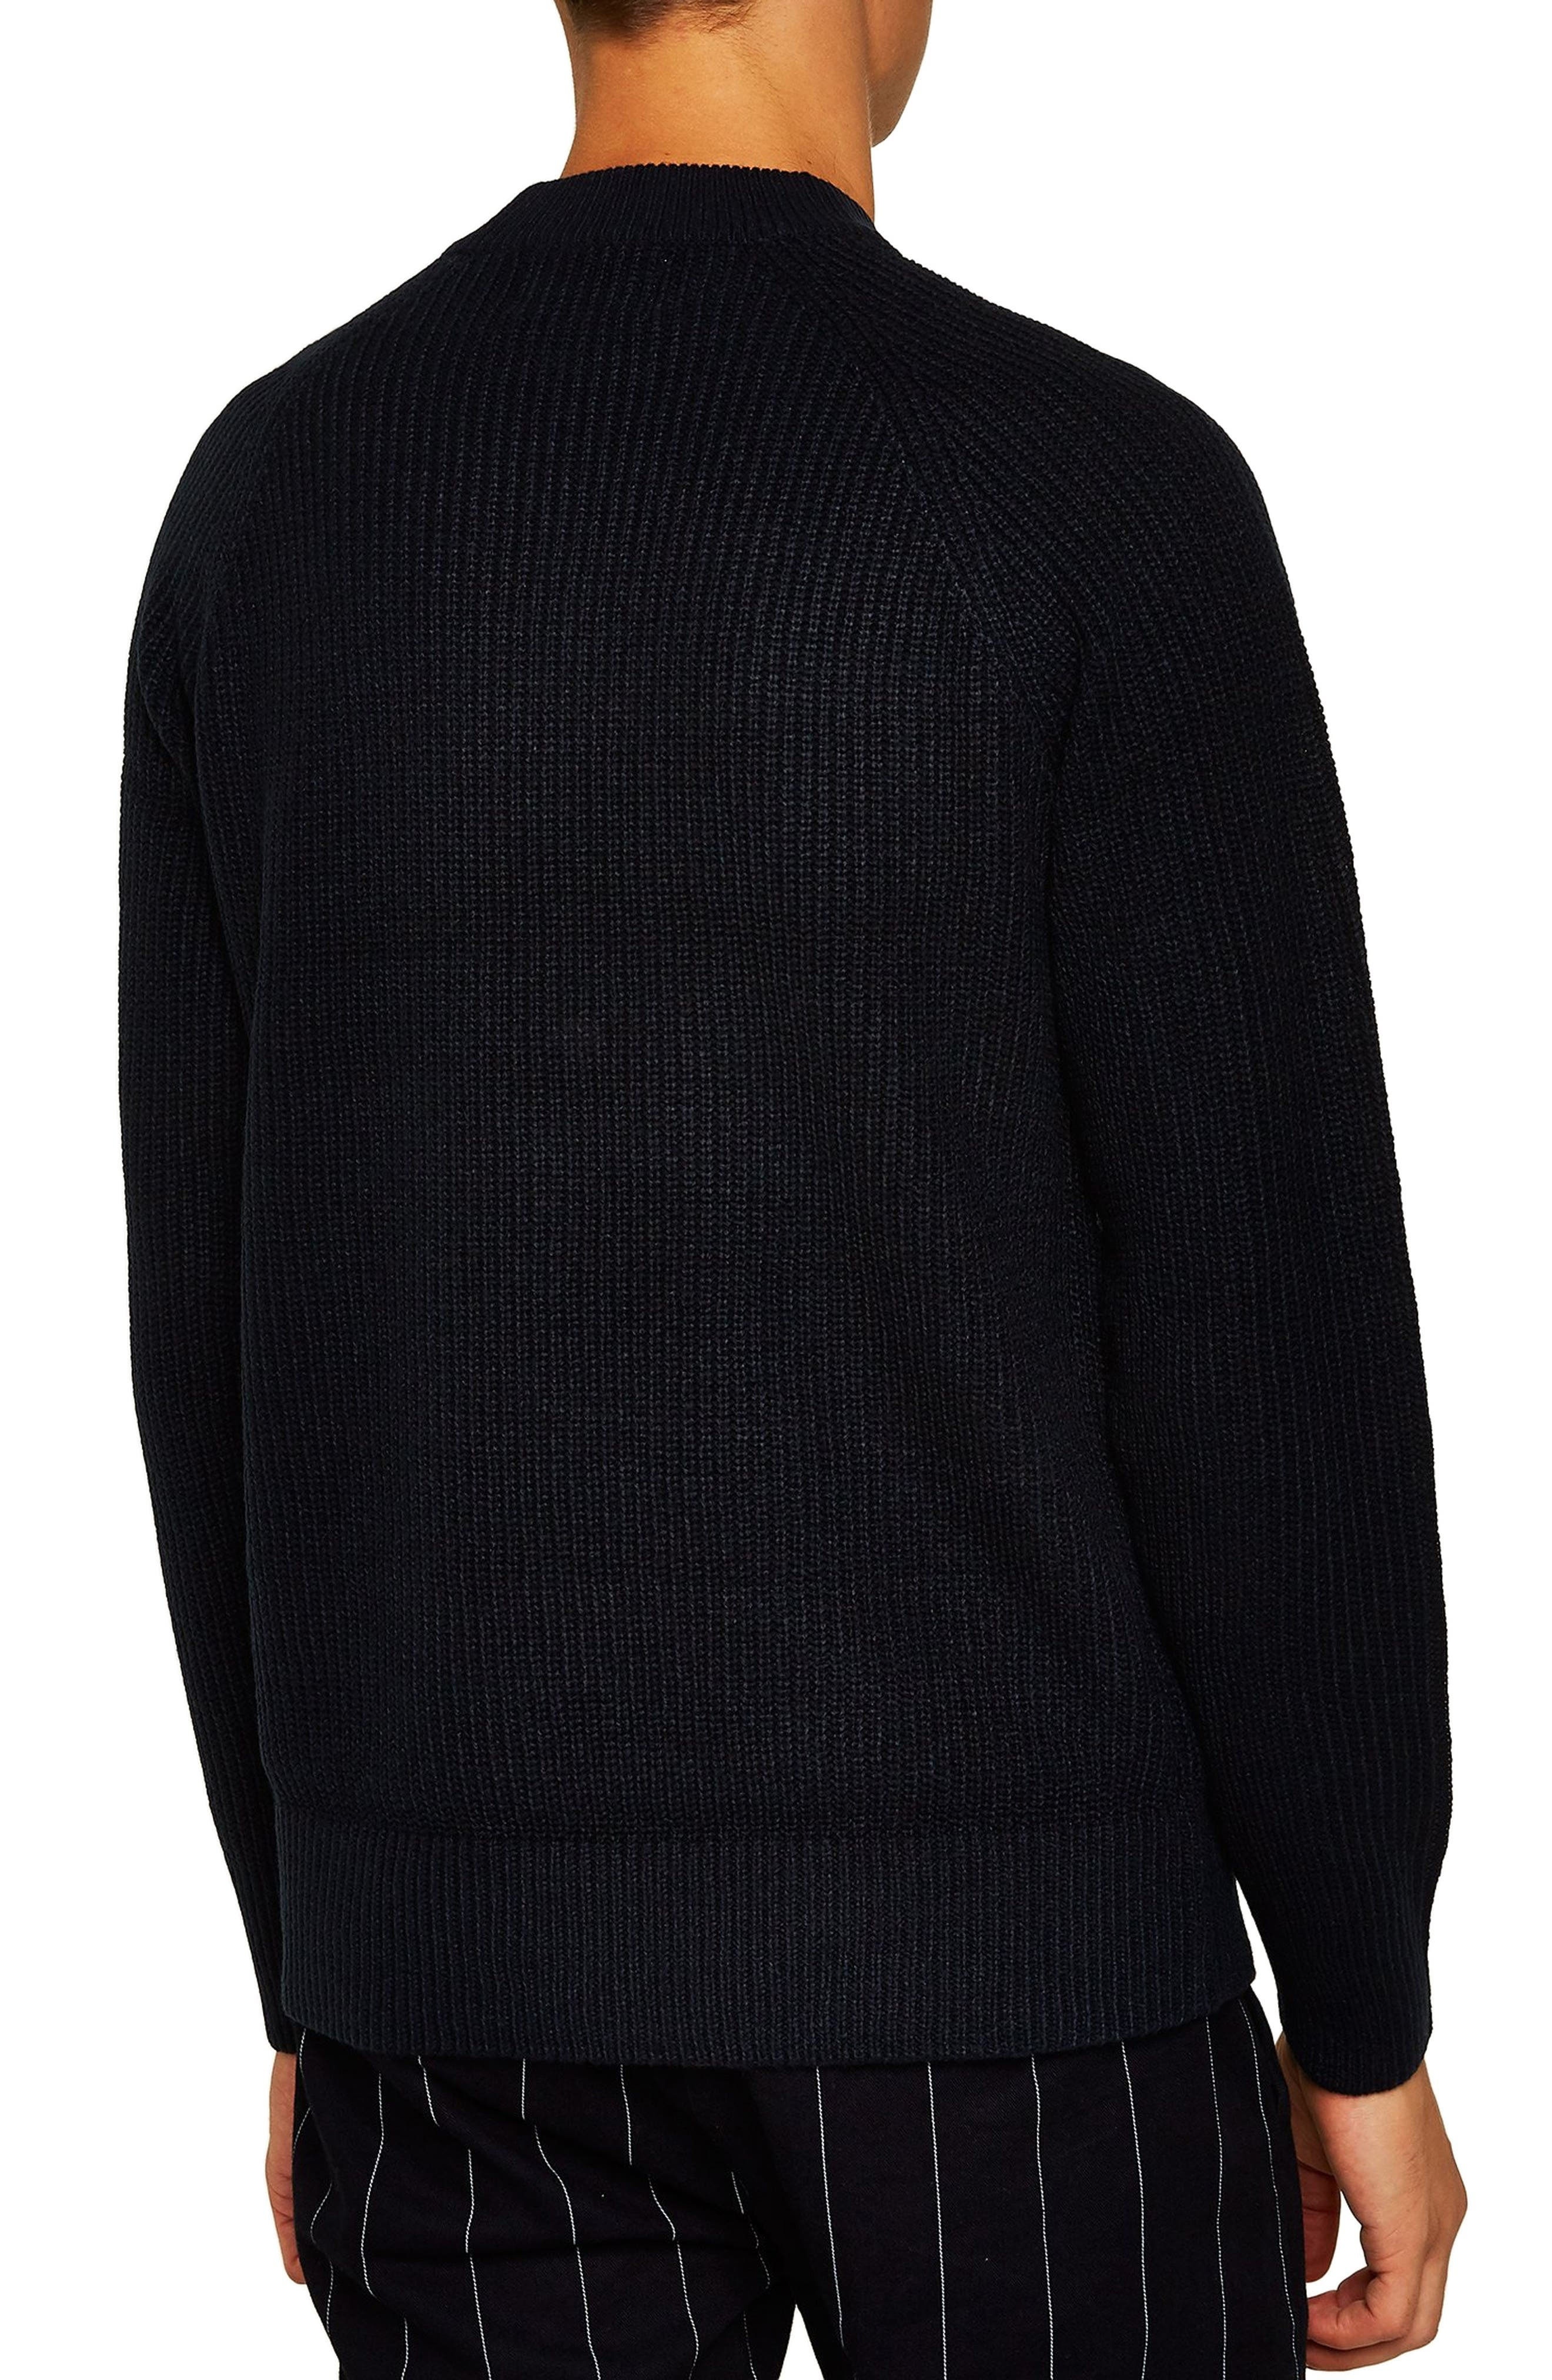 Ribbed Sweater,                             Alternate thumbnail 2, color,                             NAVY BLUE